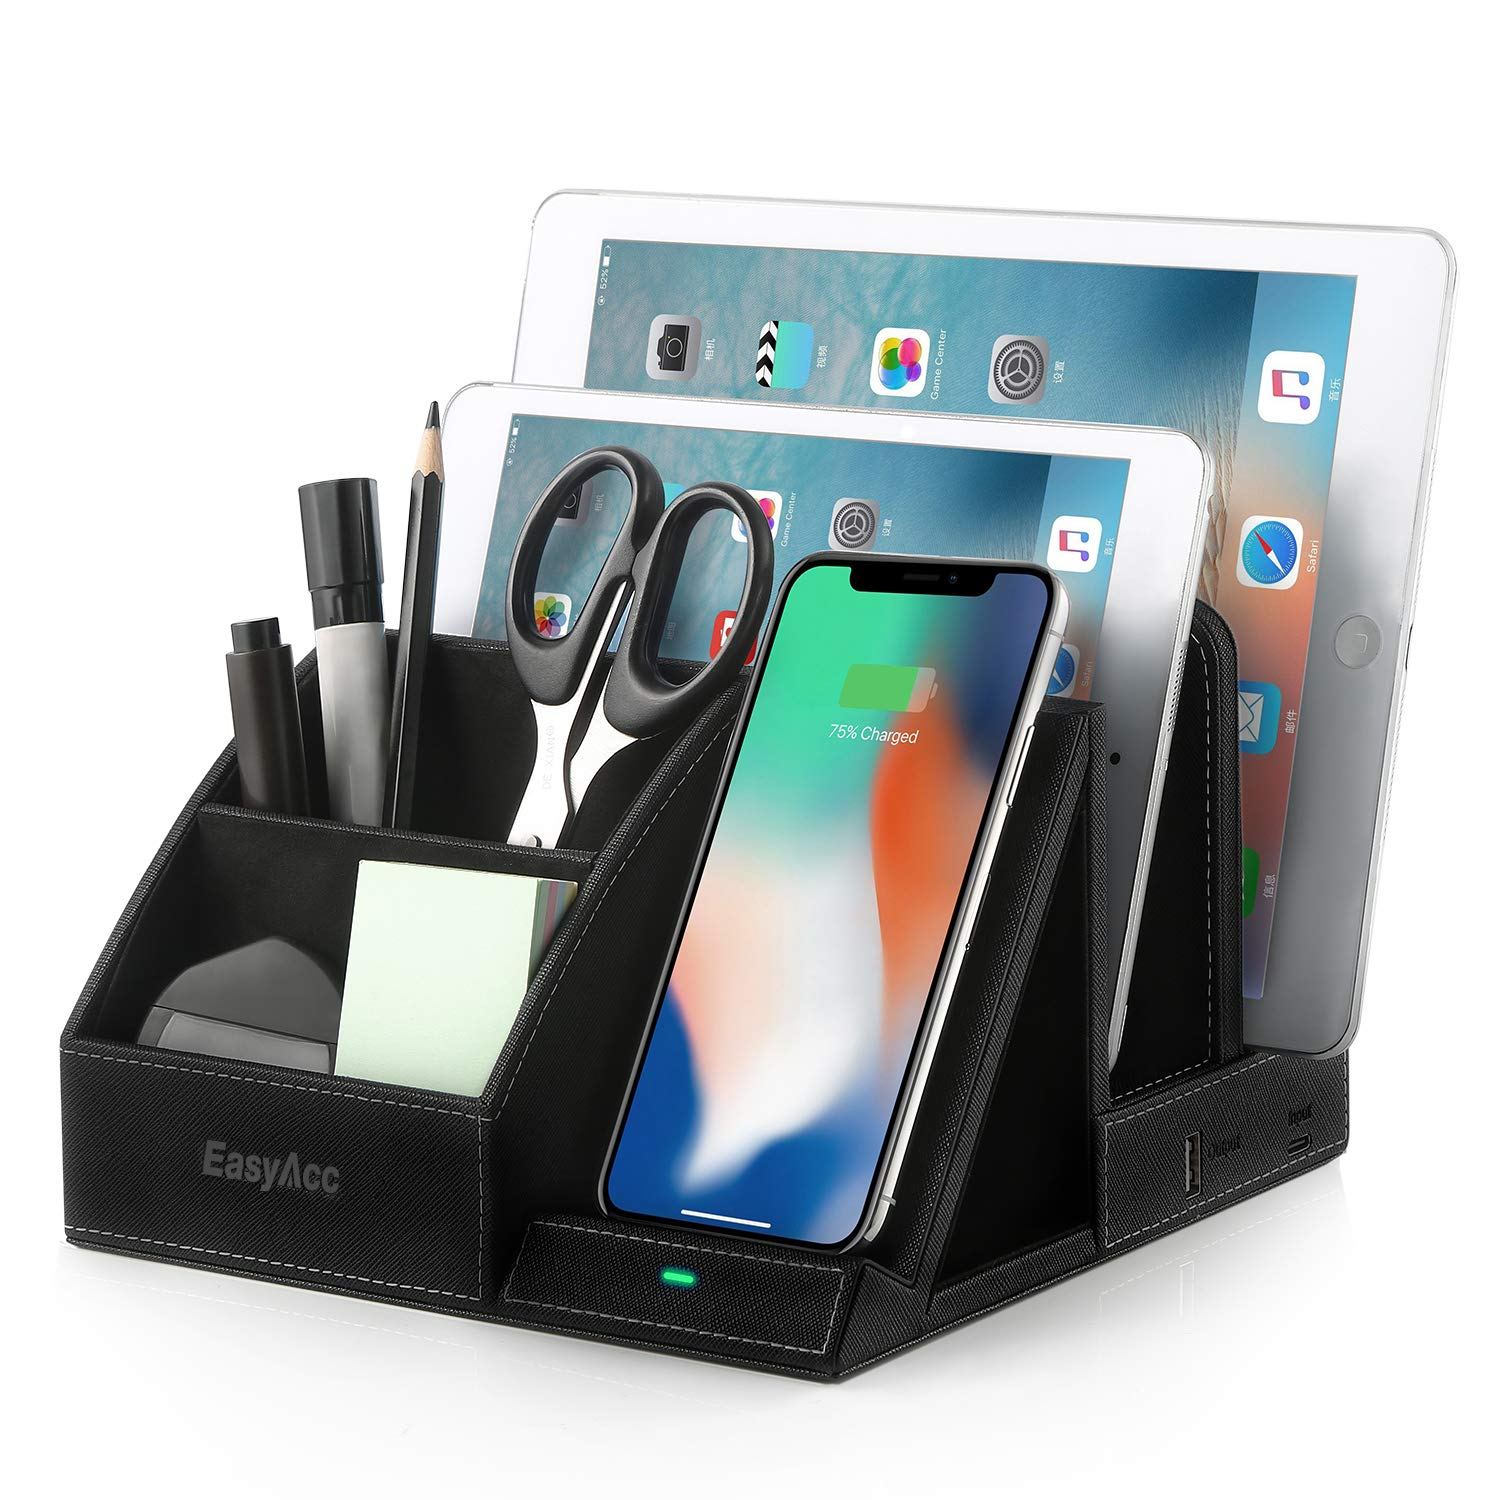 EasyAcc Fast Wireless Charger Desk Organizer with USB Charging Docking Stand, Multi-Device iPad Station Dock, Induction Charger for iPhone X XS MAX XR 8 Plus, Samsung S10e S9 S8 S8+